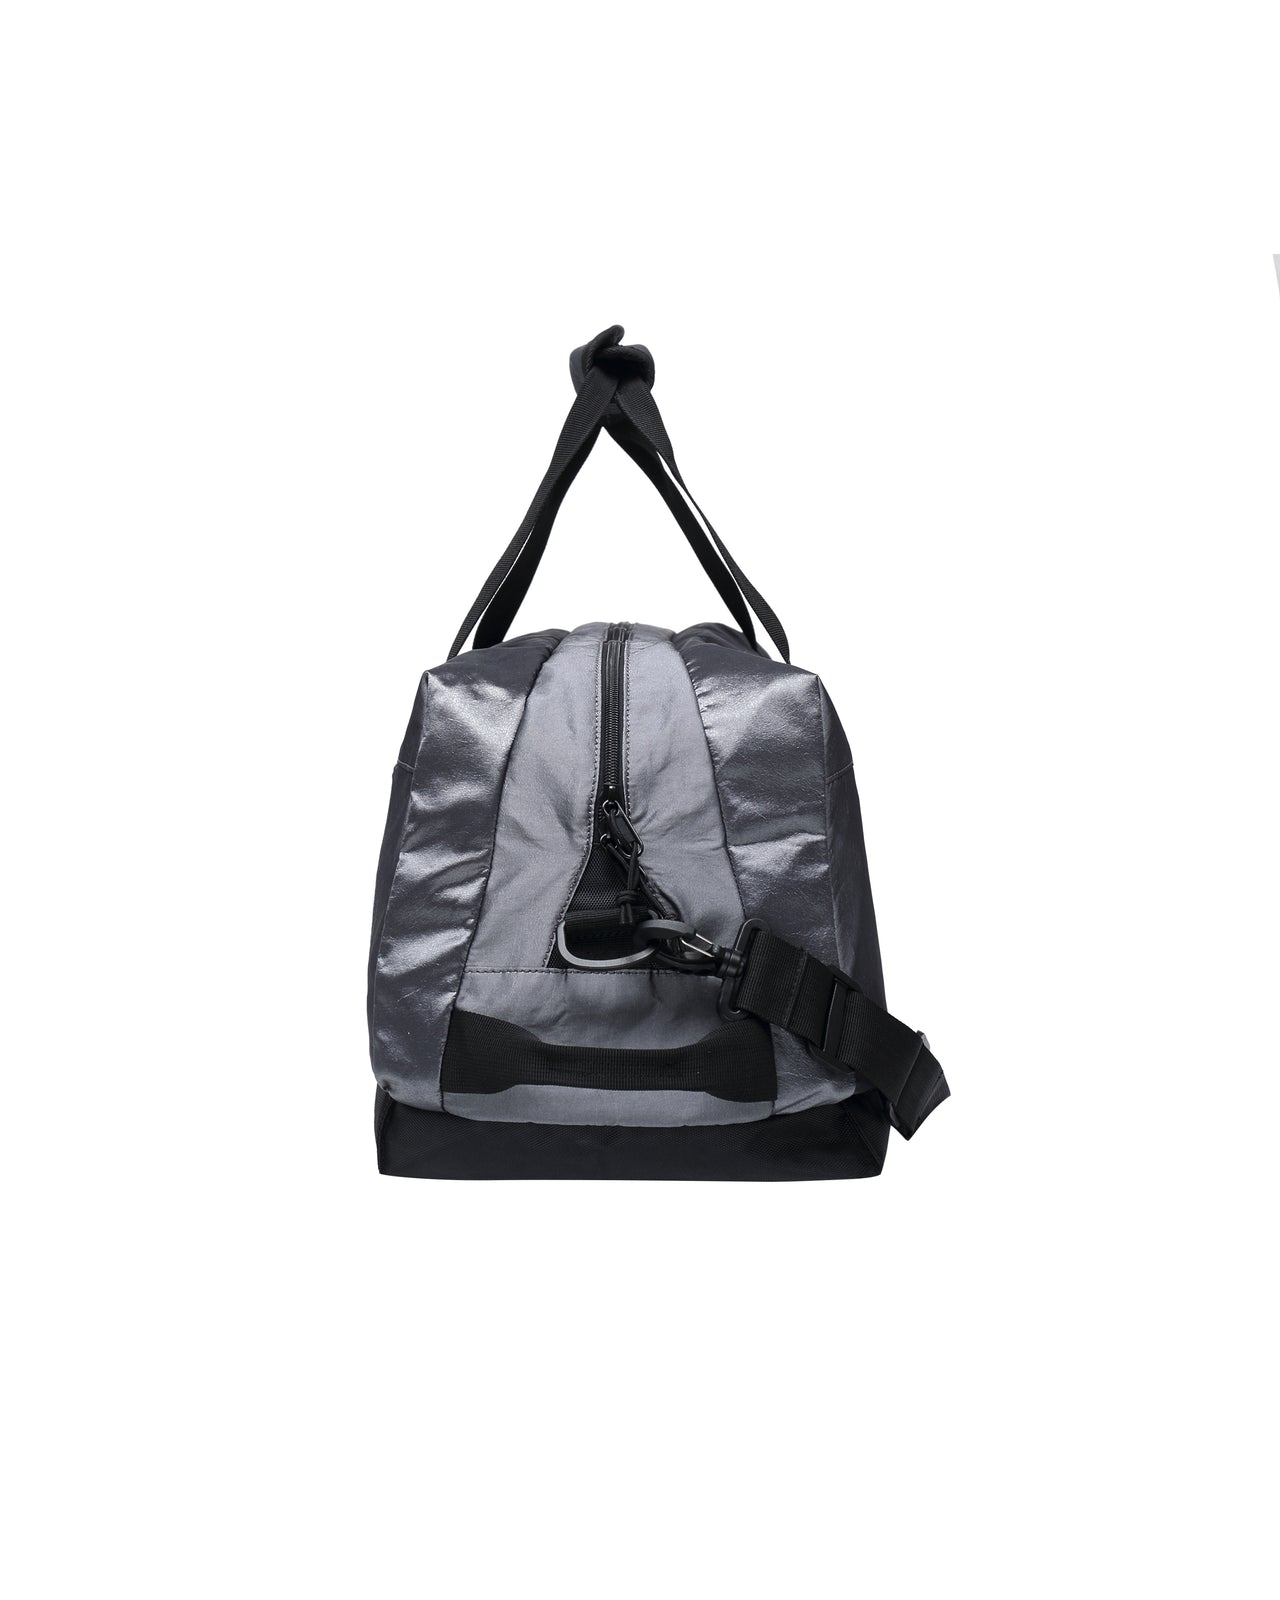 WEEKEND DUFFEL - Color: SILVER